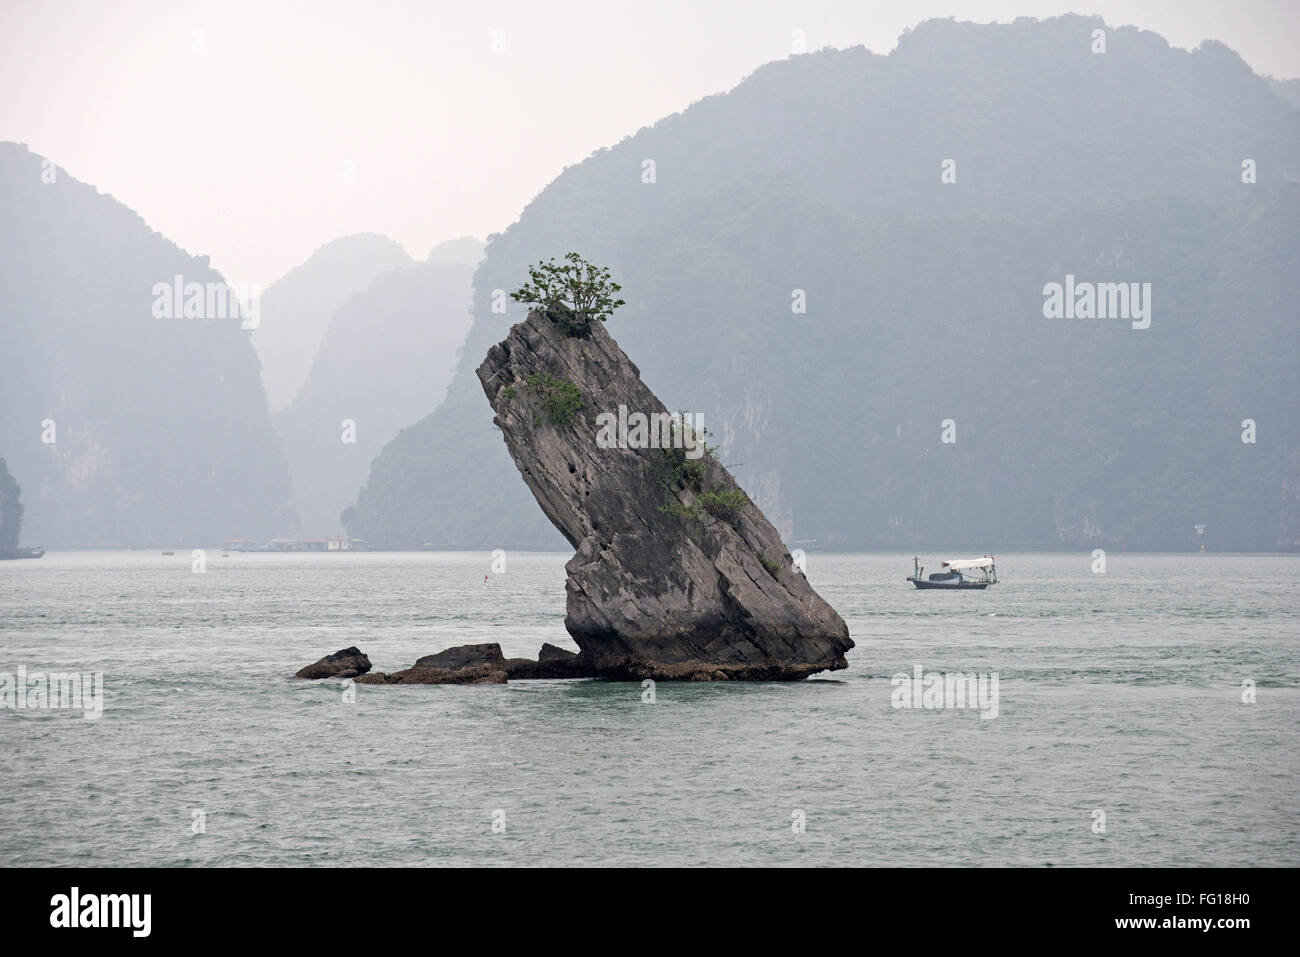 A small limestone karst, the remains of a much larger one after the island had eroded in Halong Bay. - Stock Image